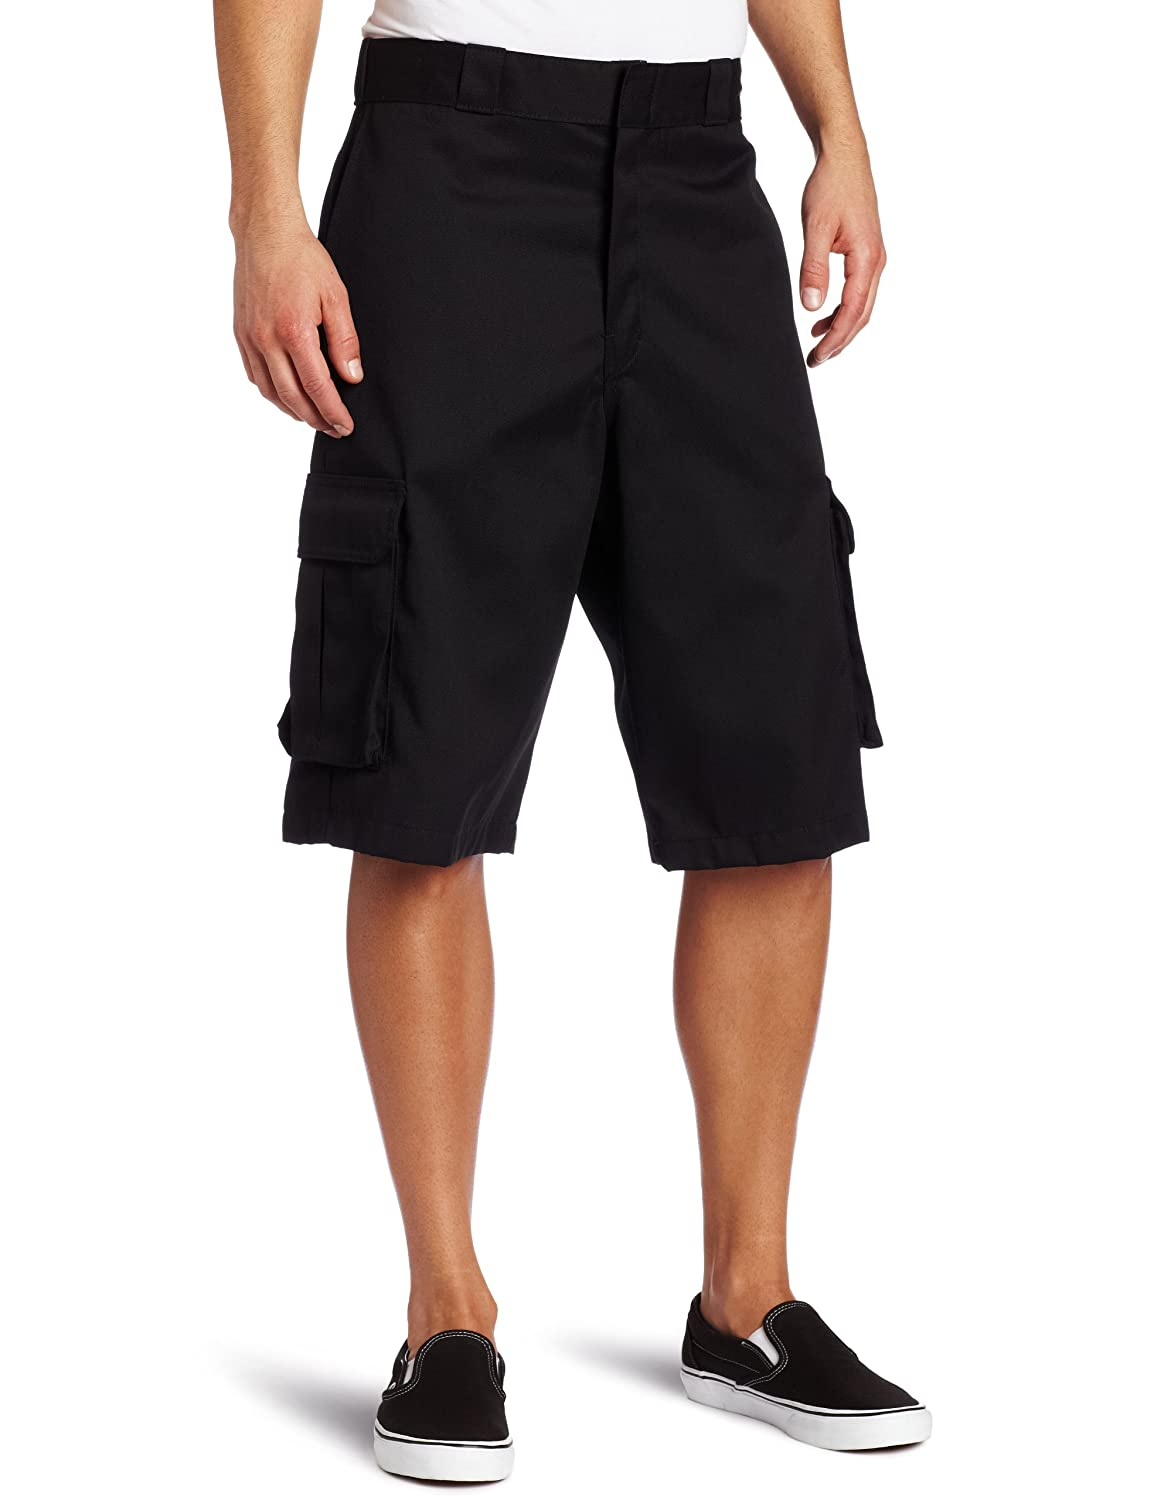 Mens Summer Fashion Shorts Sale